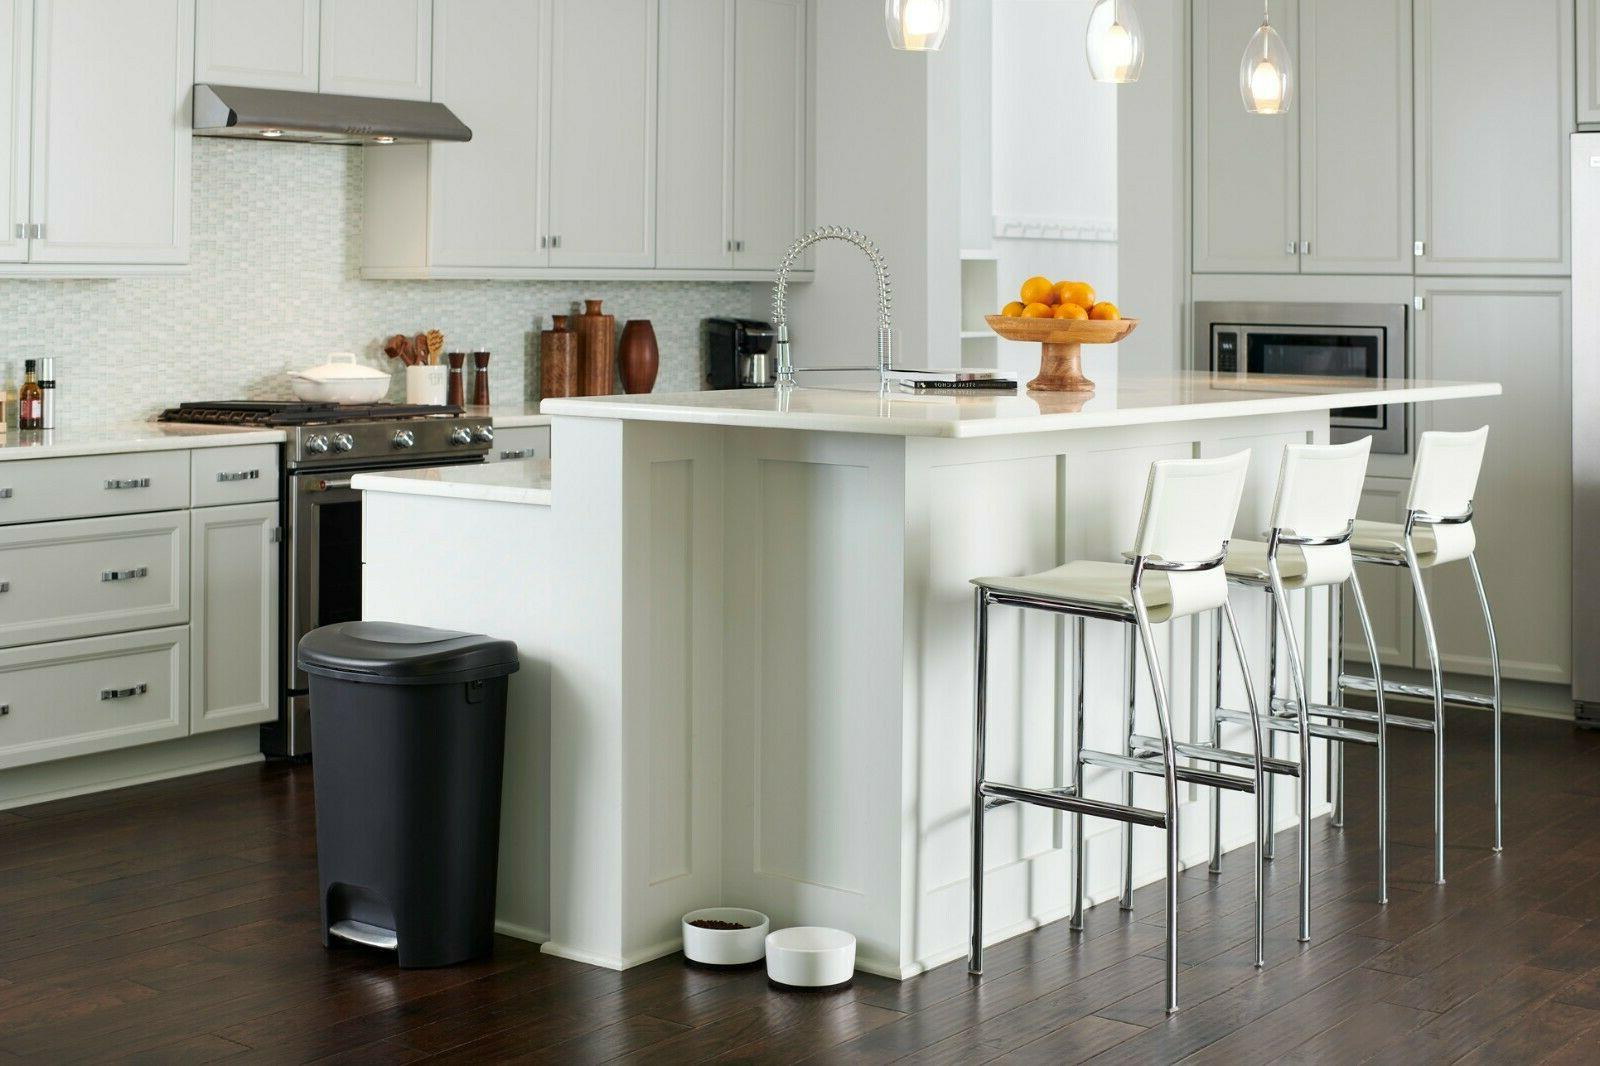 Rubbermaid Step-On Trash Can for Home,Kitchen,Bathroom Gallon